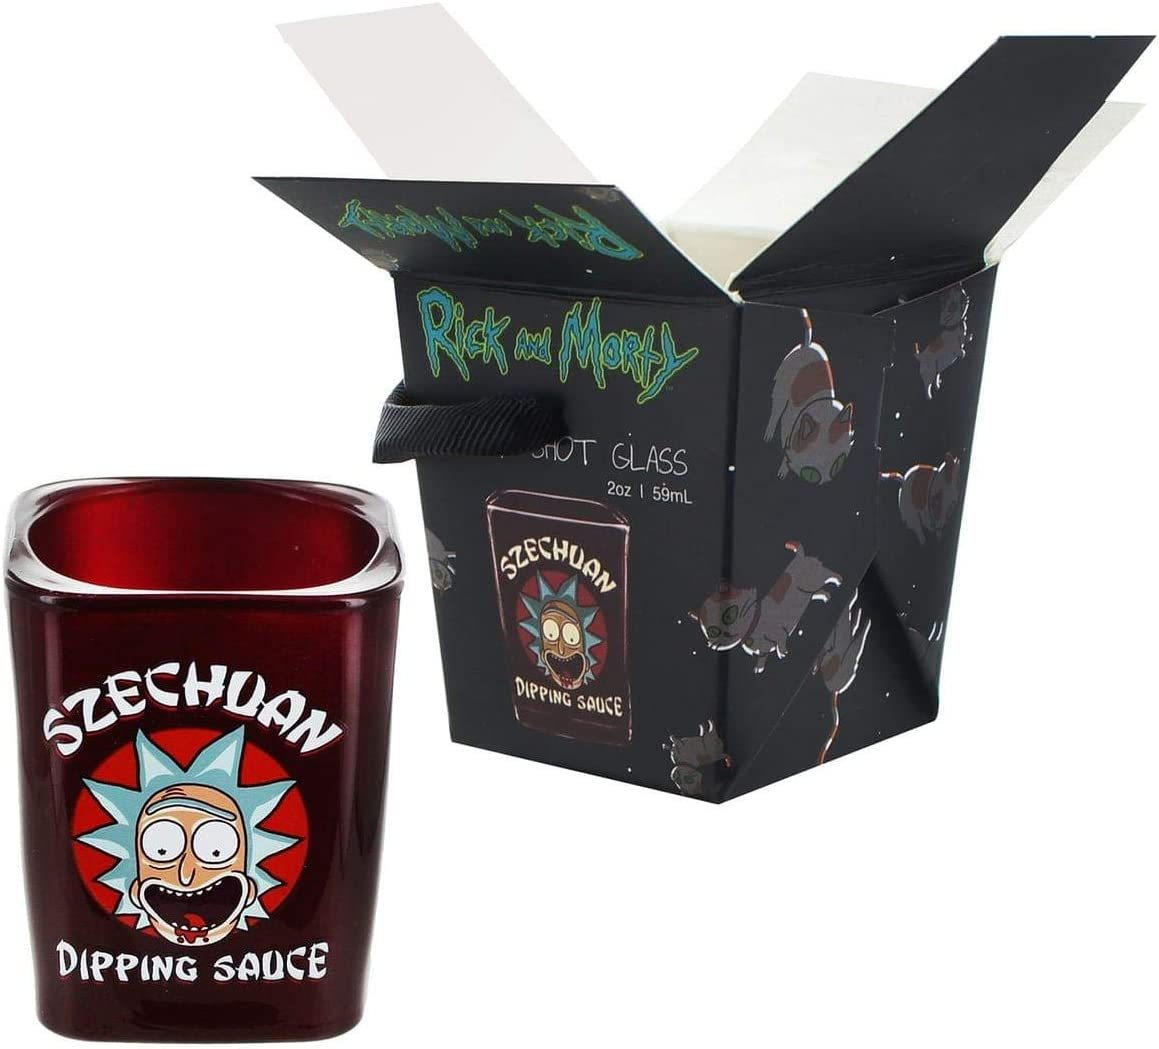 OFFICIAL RICK AND MORTY SET OF 4 SHOT GLASSES PARTY GLASS NEW AND GIFT BOXED